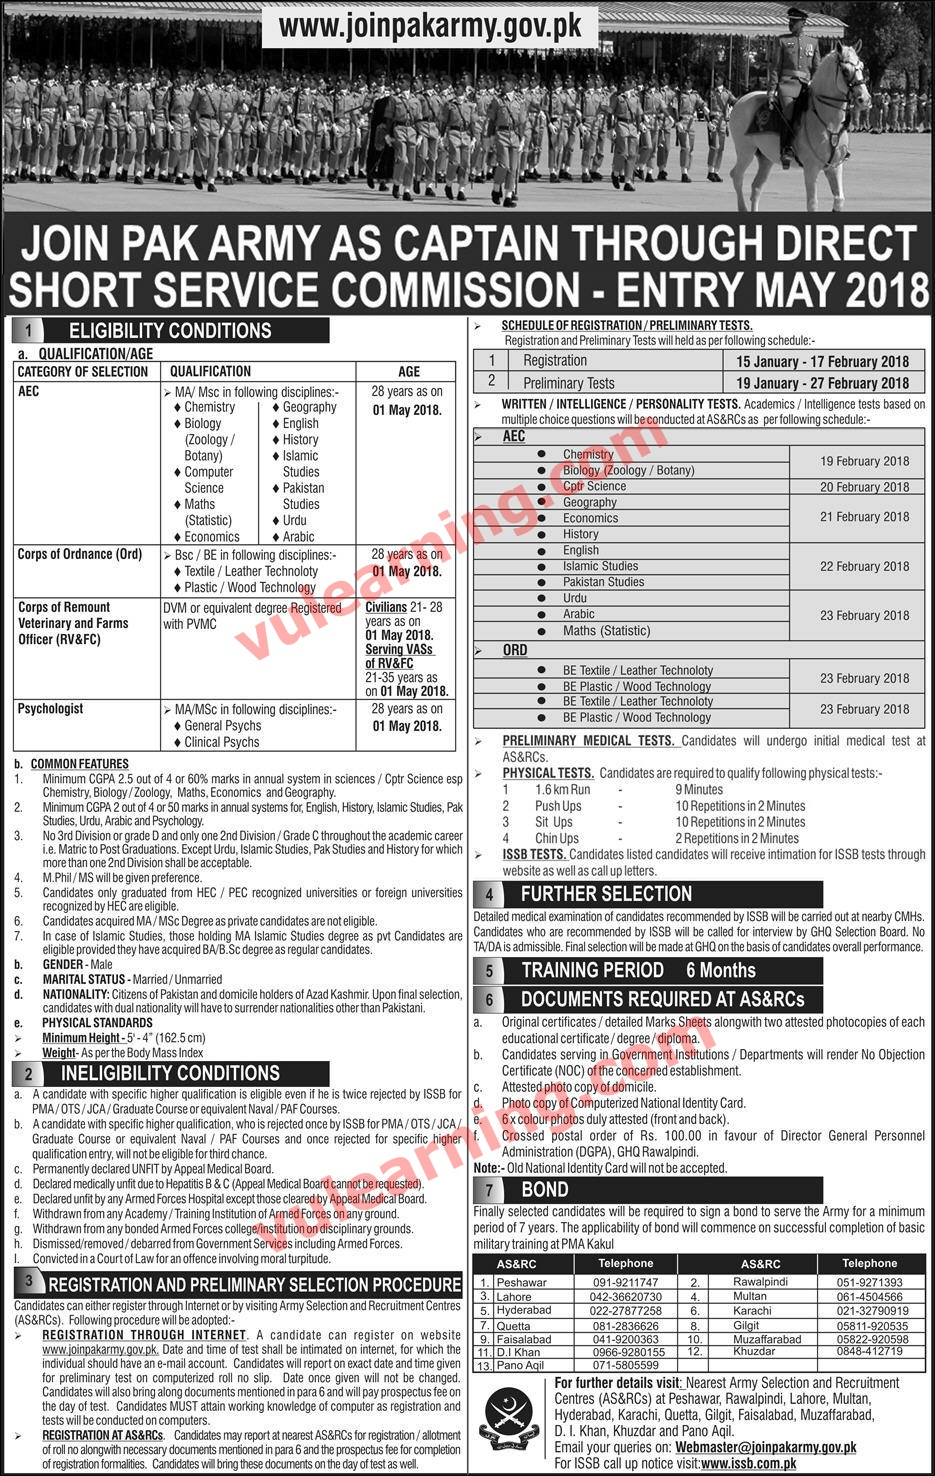 Join Pak Army as Captain through Direct Short Service Commission ...